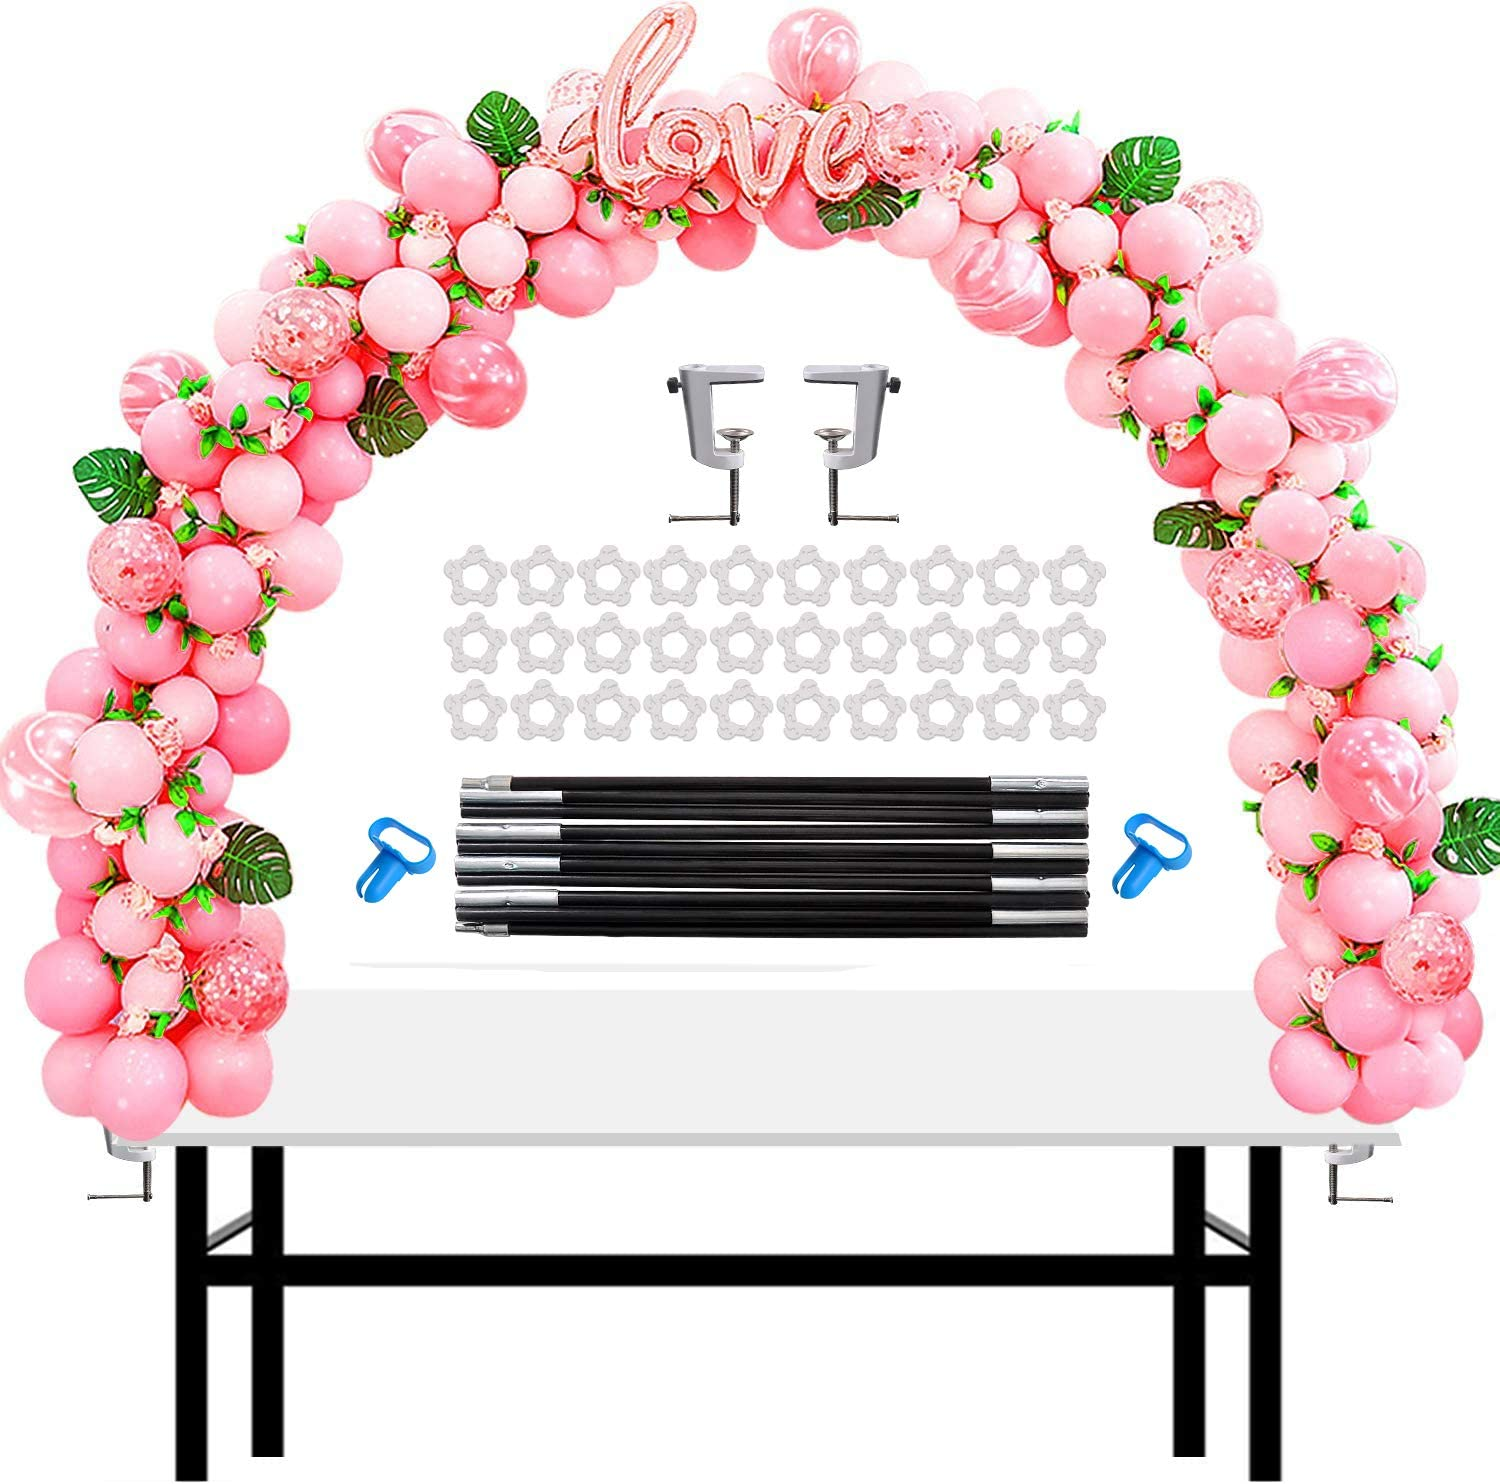 Chamvis Table Balloon Arch Kit Adjustable Balloon Stand for Baby Shower, Birthday, Wedding, Festival, Graduation Christmas Decorations and DIY Event Party Supplies